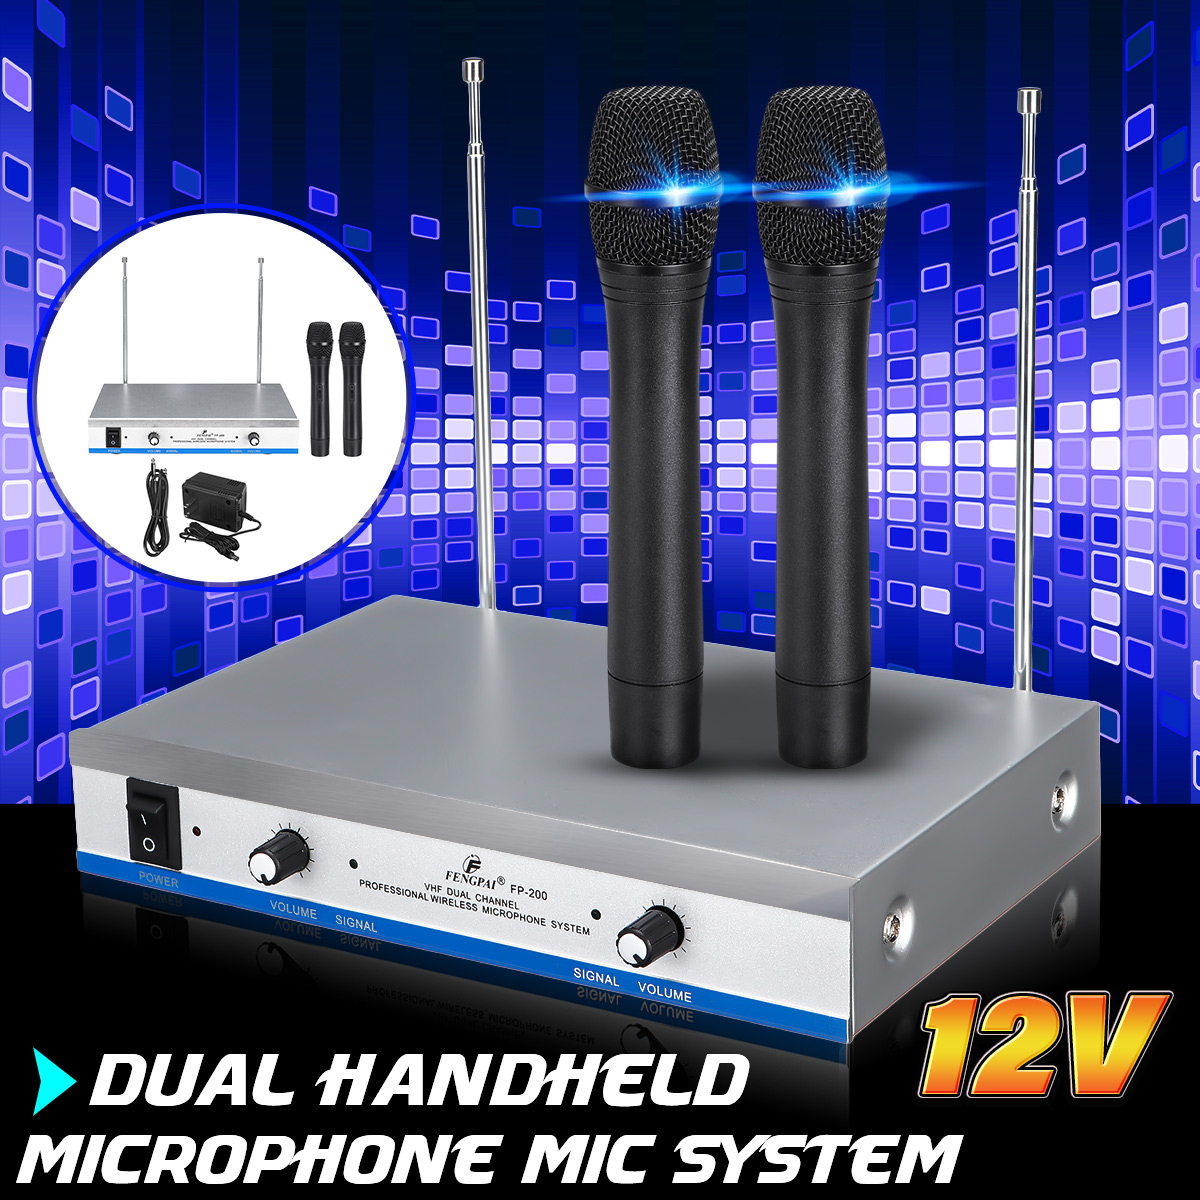 Wireless 2 Channel Dual Handheld Microphone Mic System with Receiver For Studio Home Kareoke KTV Party Supplies SpeakersWireless 2 Channel Dual Handheld Microphone Mic System with Receiver For Studio Home Kareoke KTV Party Supplies Speakers